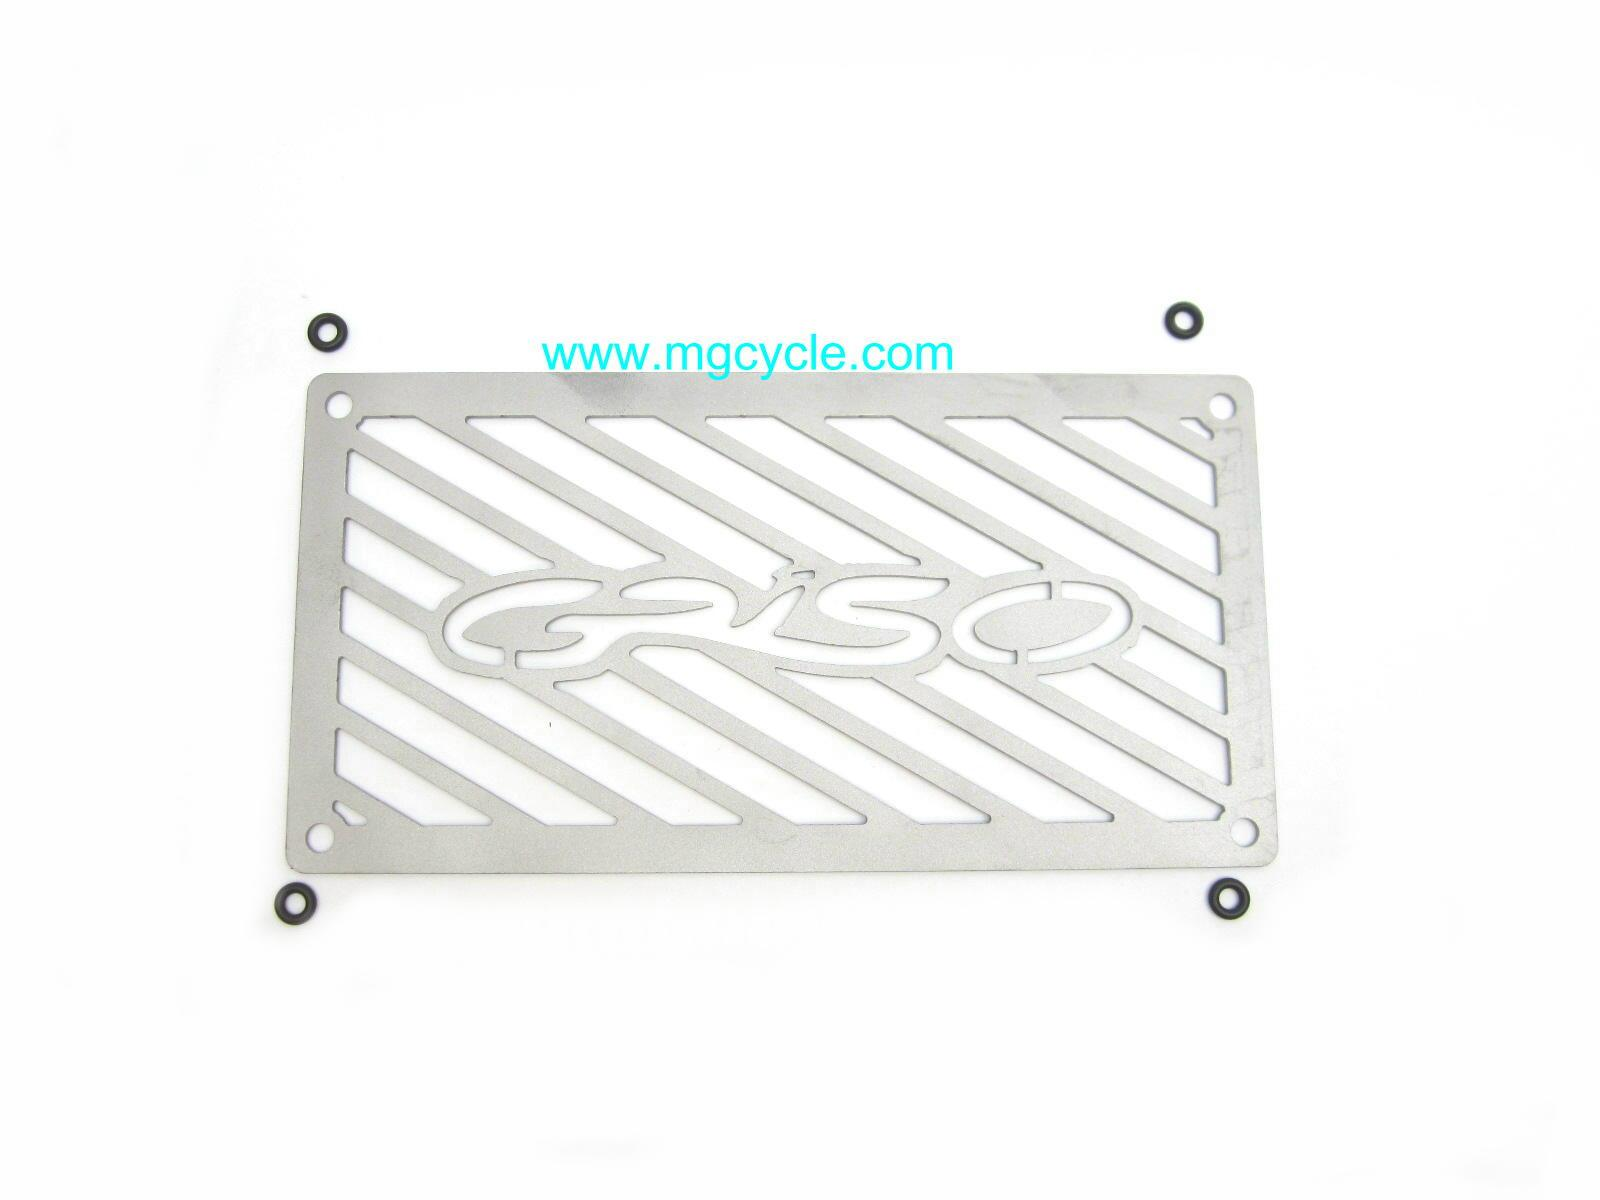 Stainless oil cooler cover for Griso